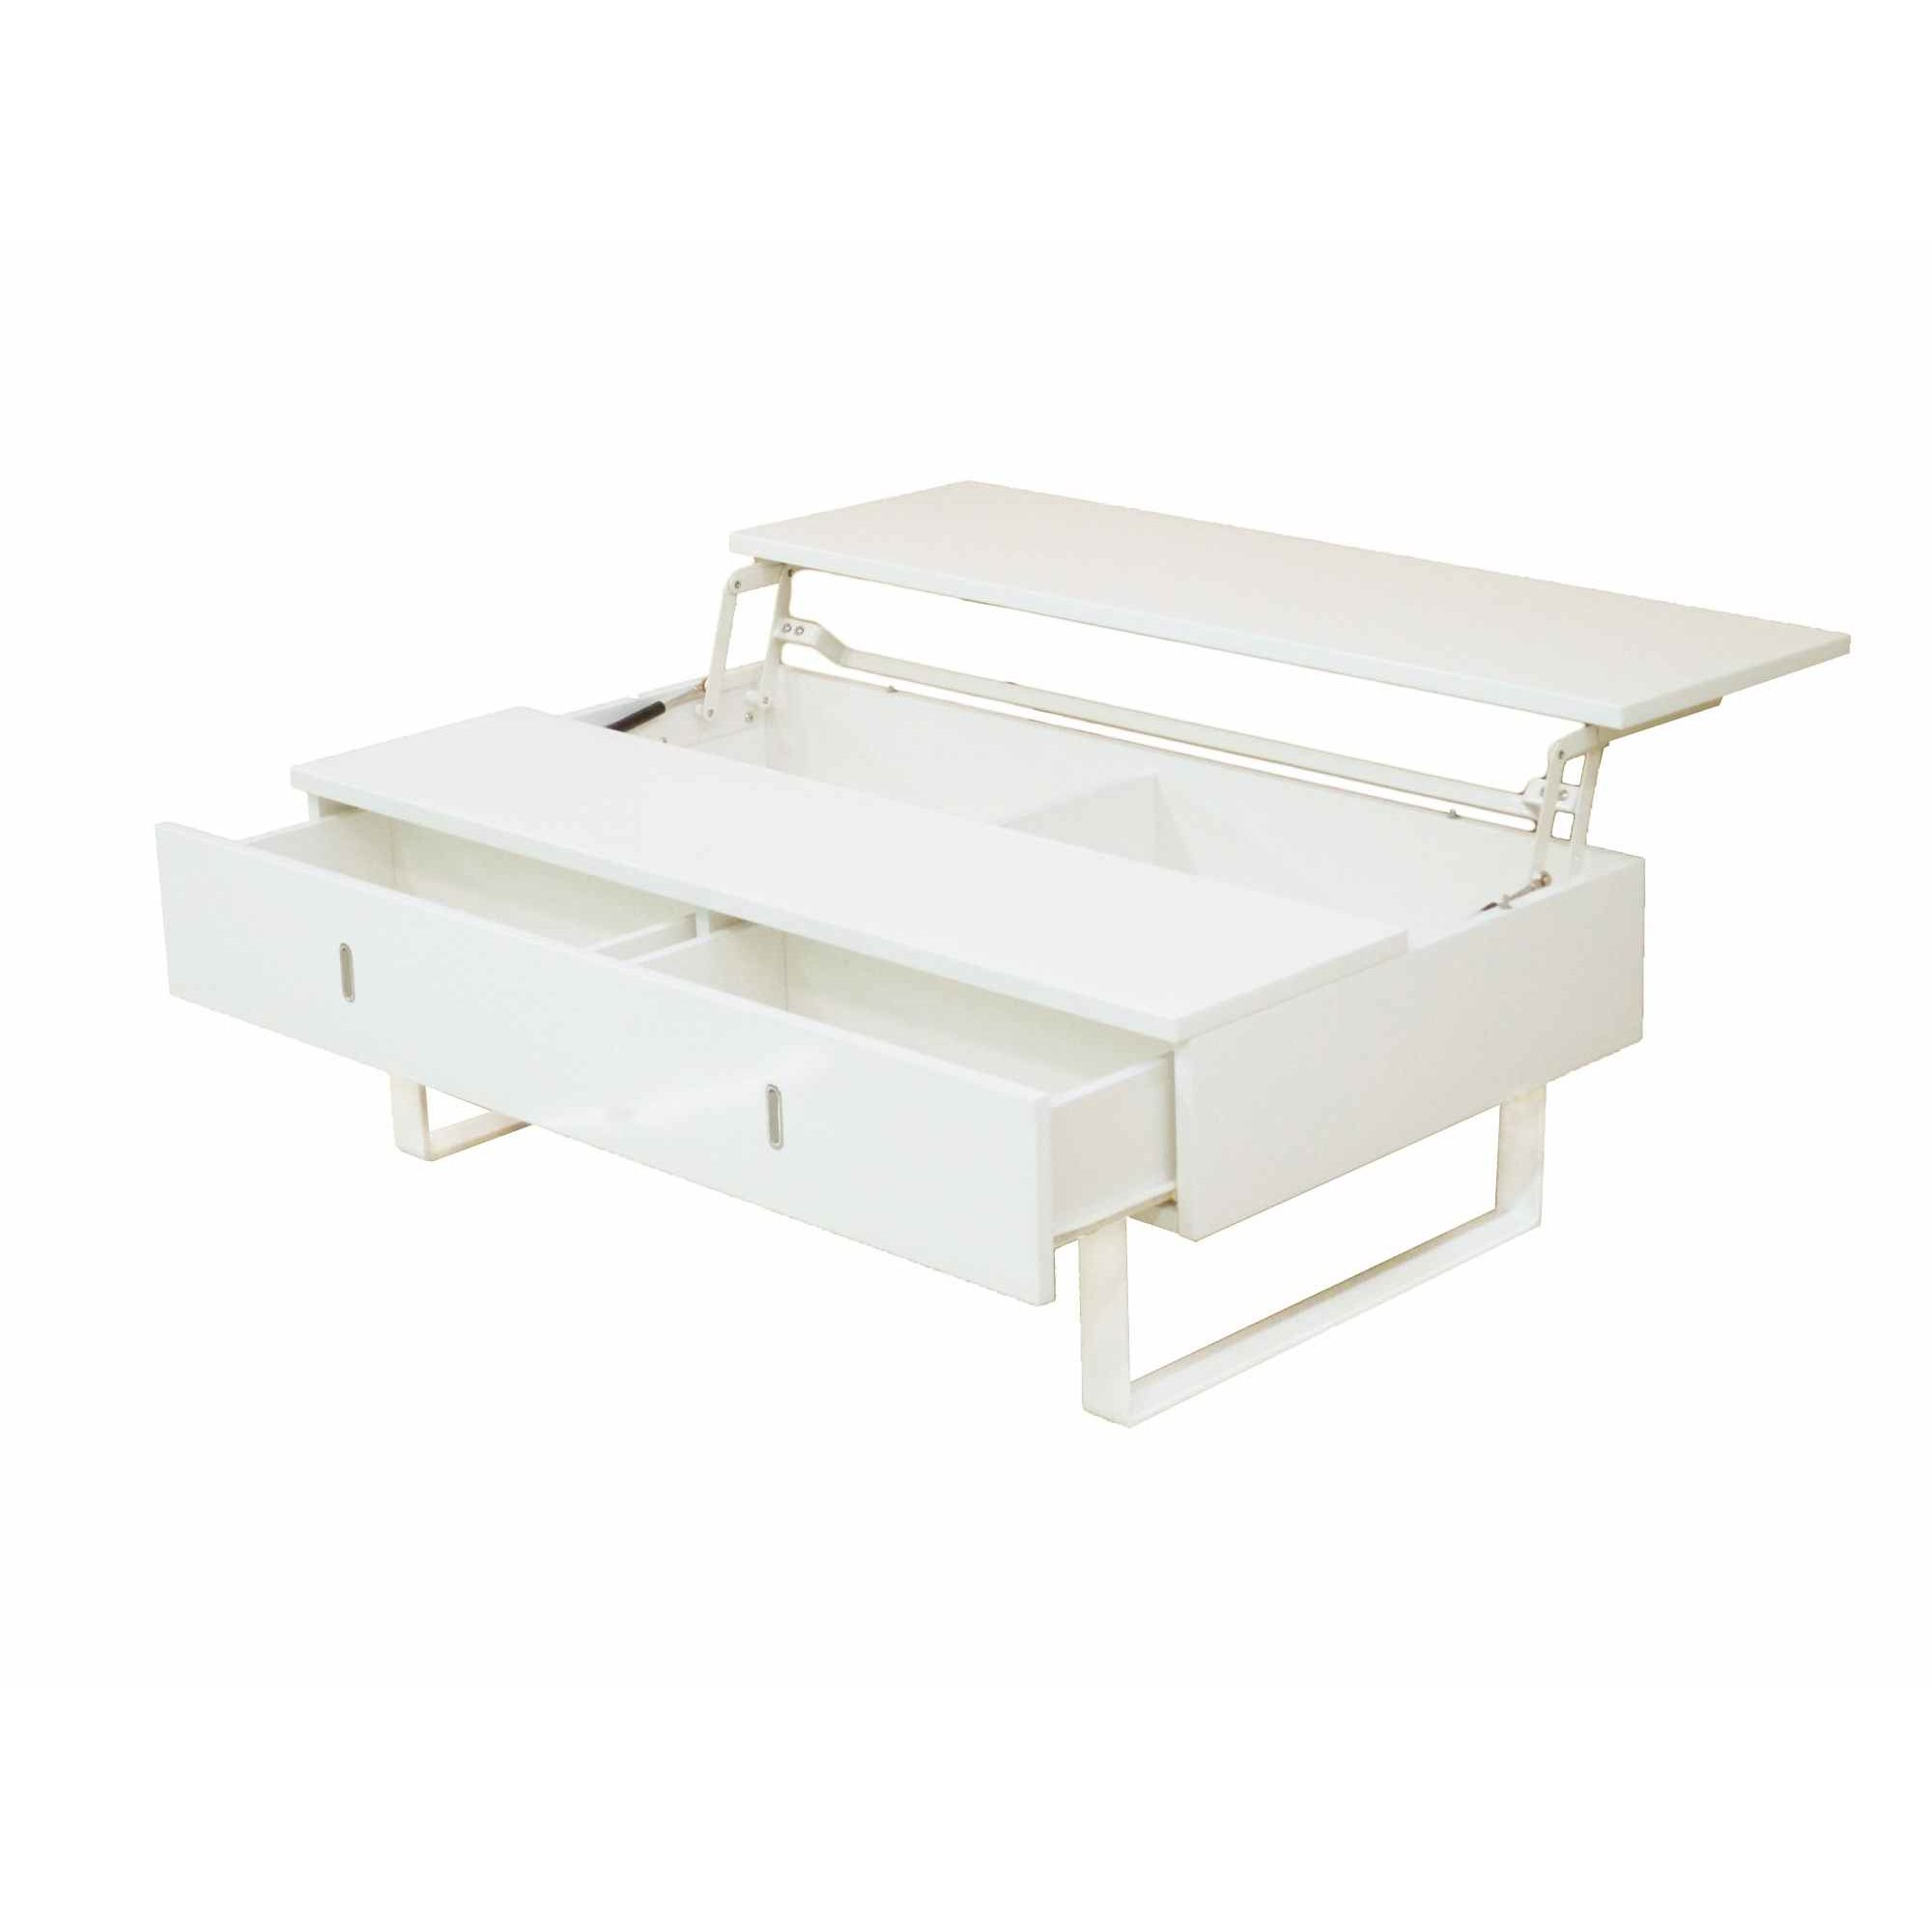 Table Basse Laquee Blanc Table Basse Laquée Blanc Multifonction Easy